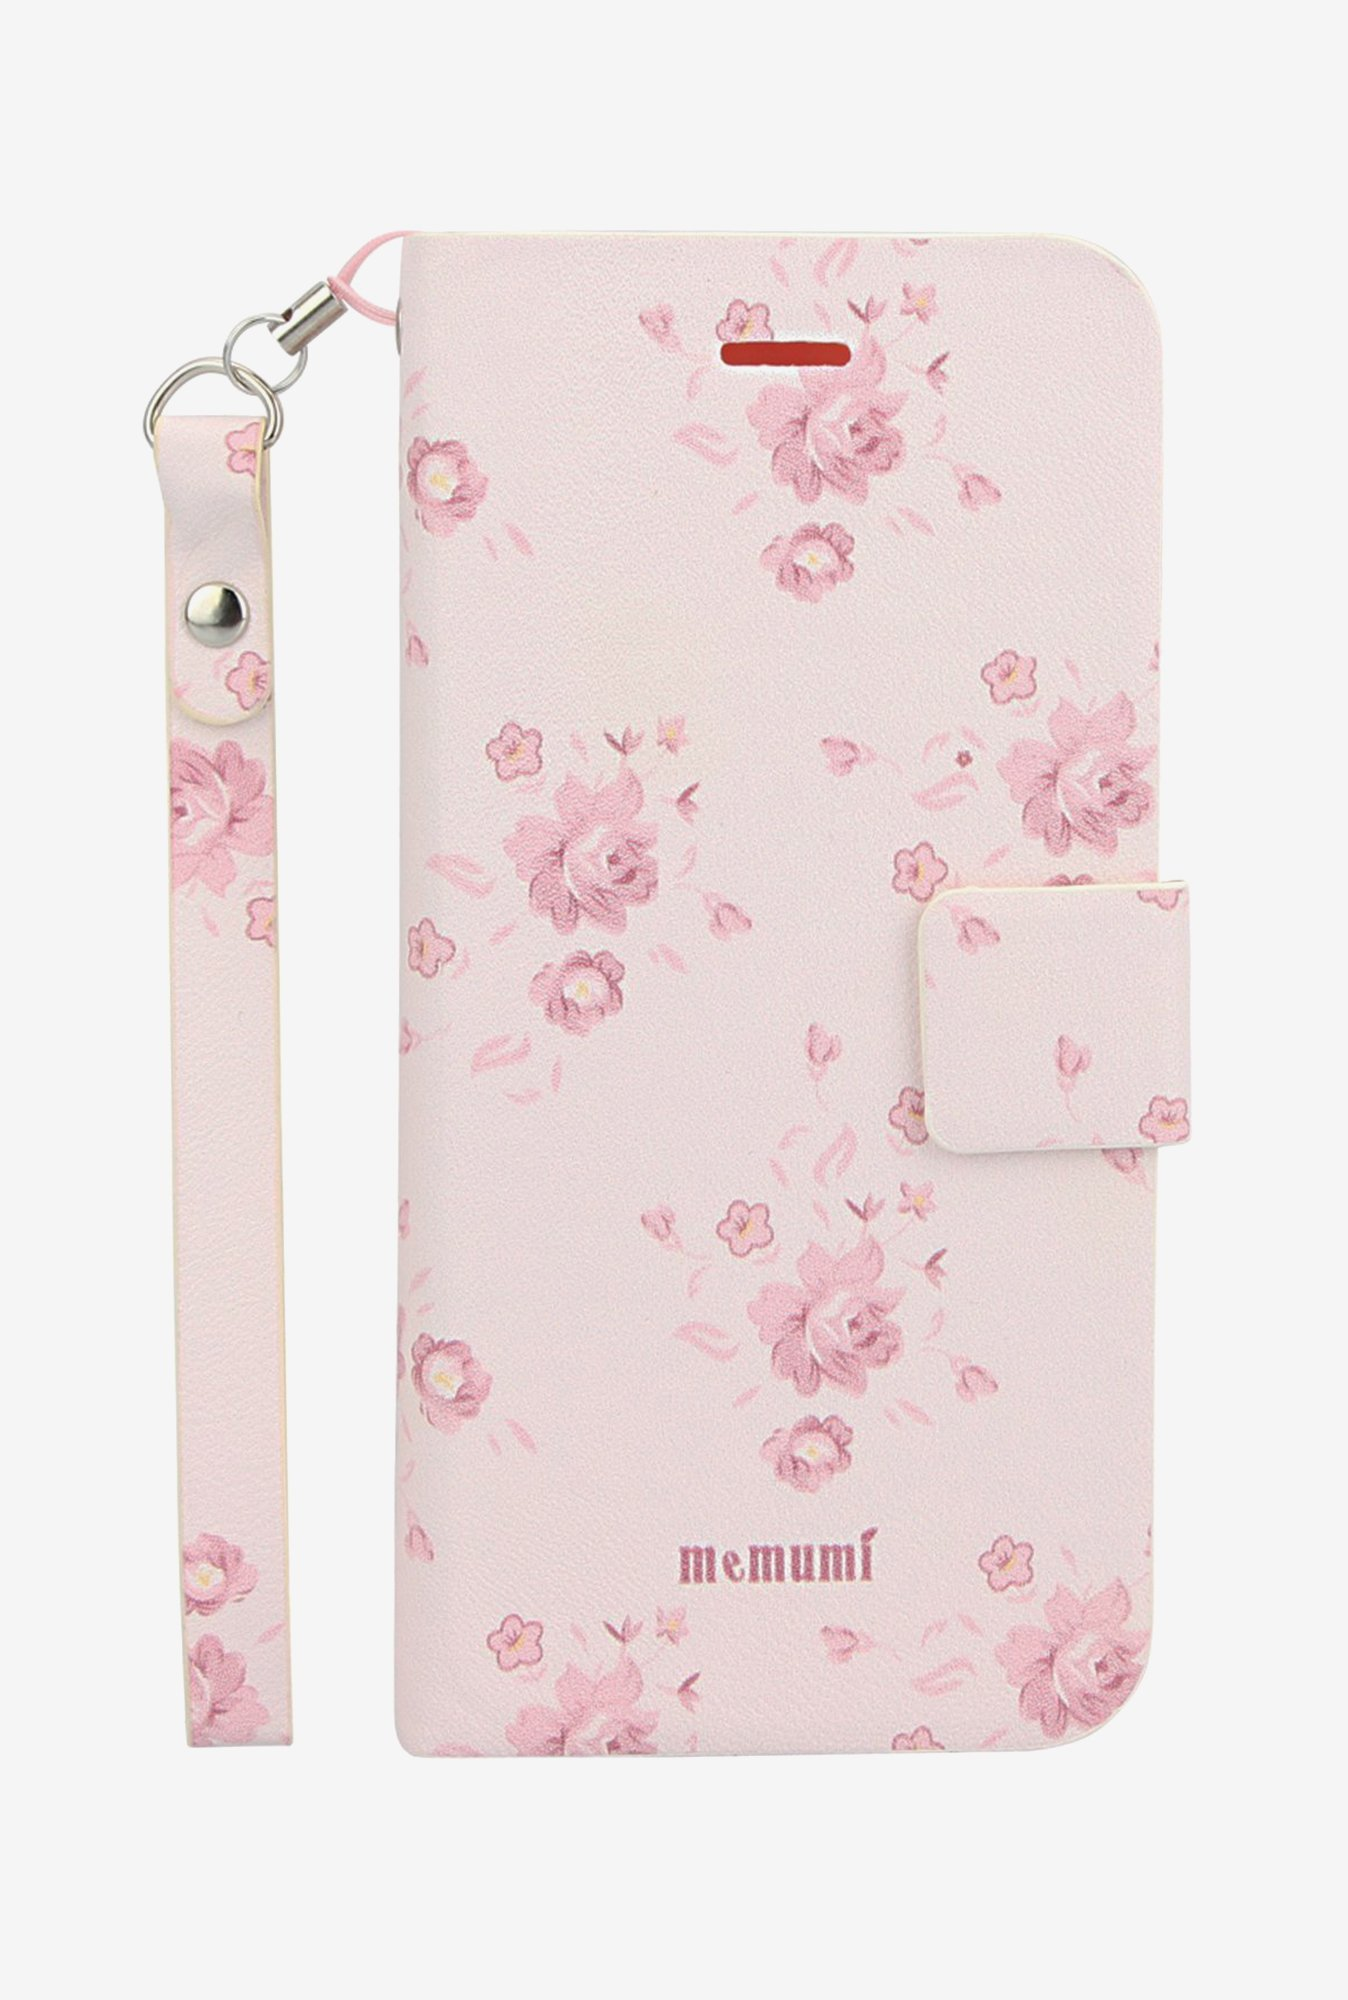 Memumi Flower Printed Flip Cover for iPhone 5 (White)